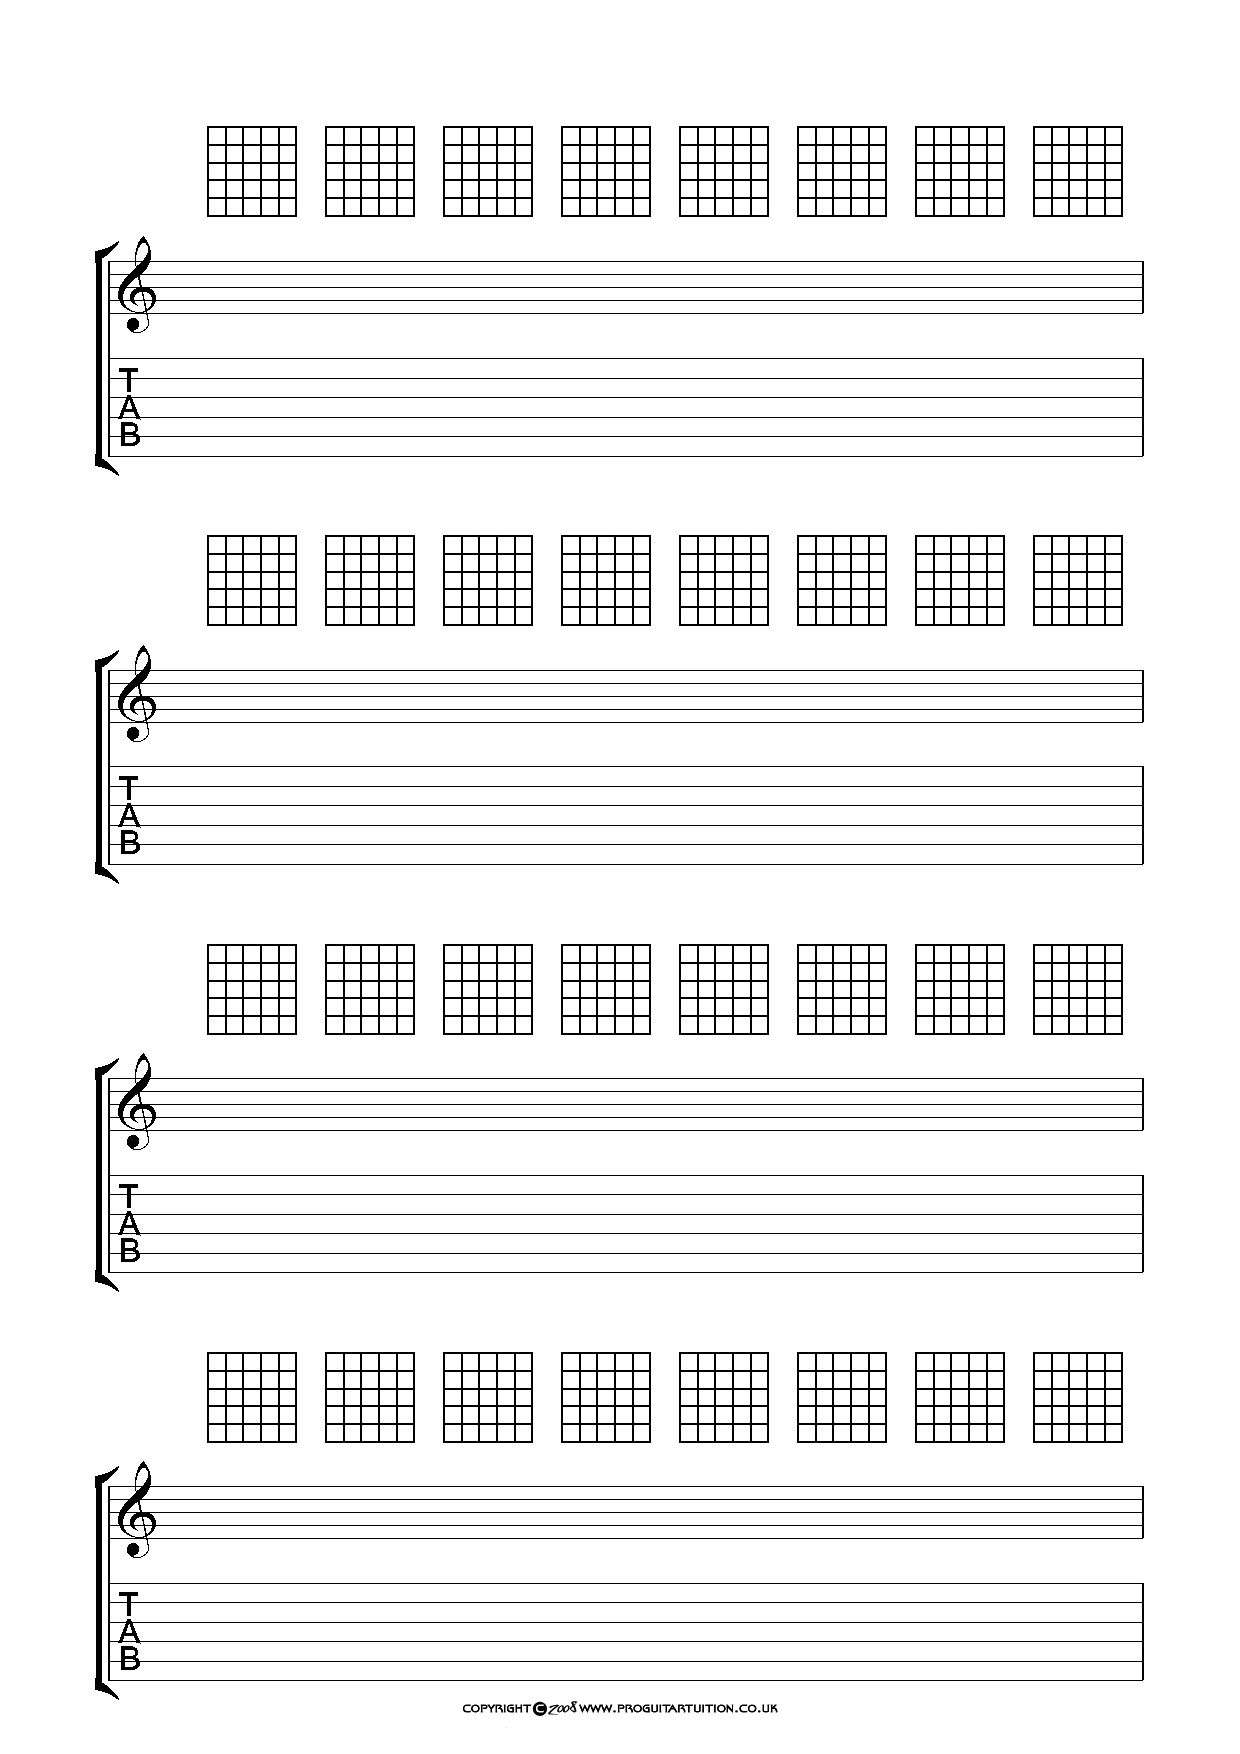 Blank Chord Sheets - Google Search | Guitar In 2019 | Pinterest - Free Printable Guitar Tablature Paper